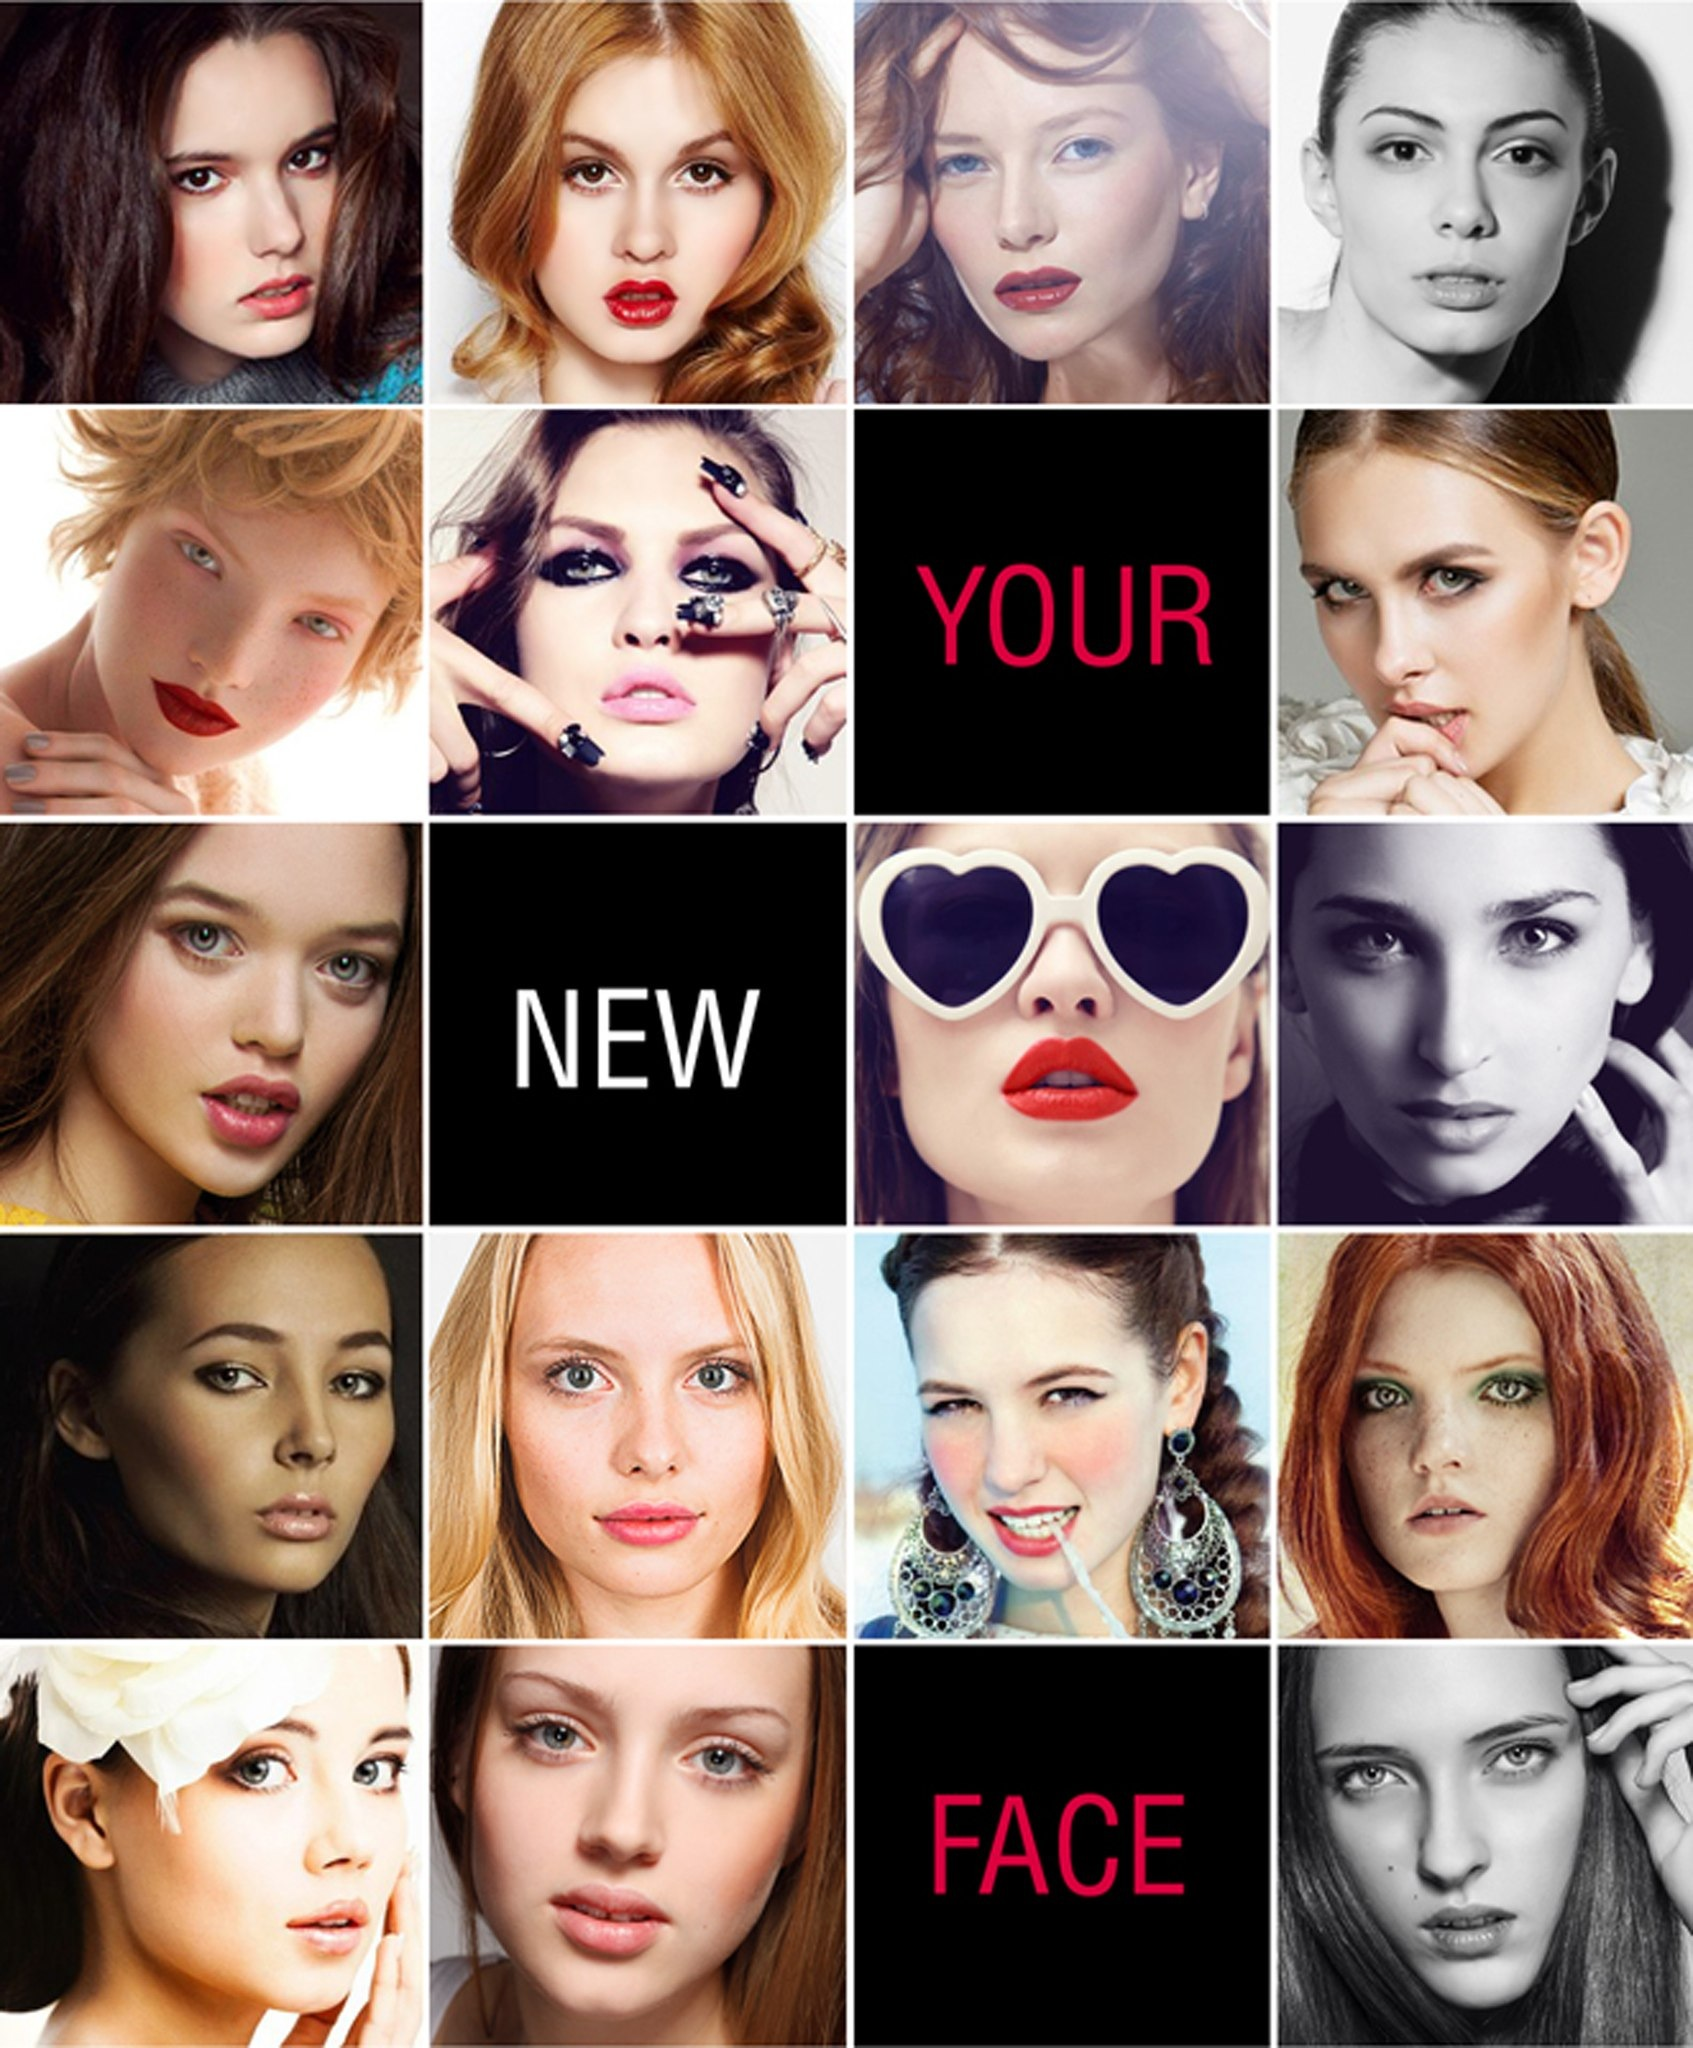 Your new face